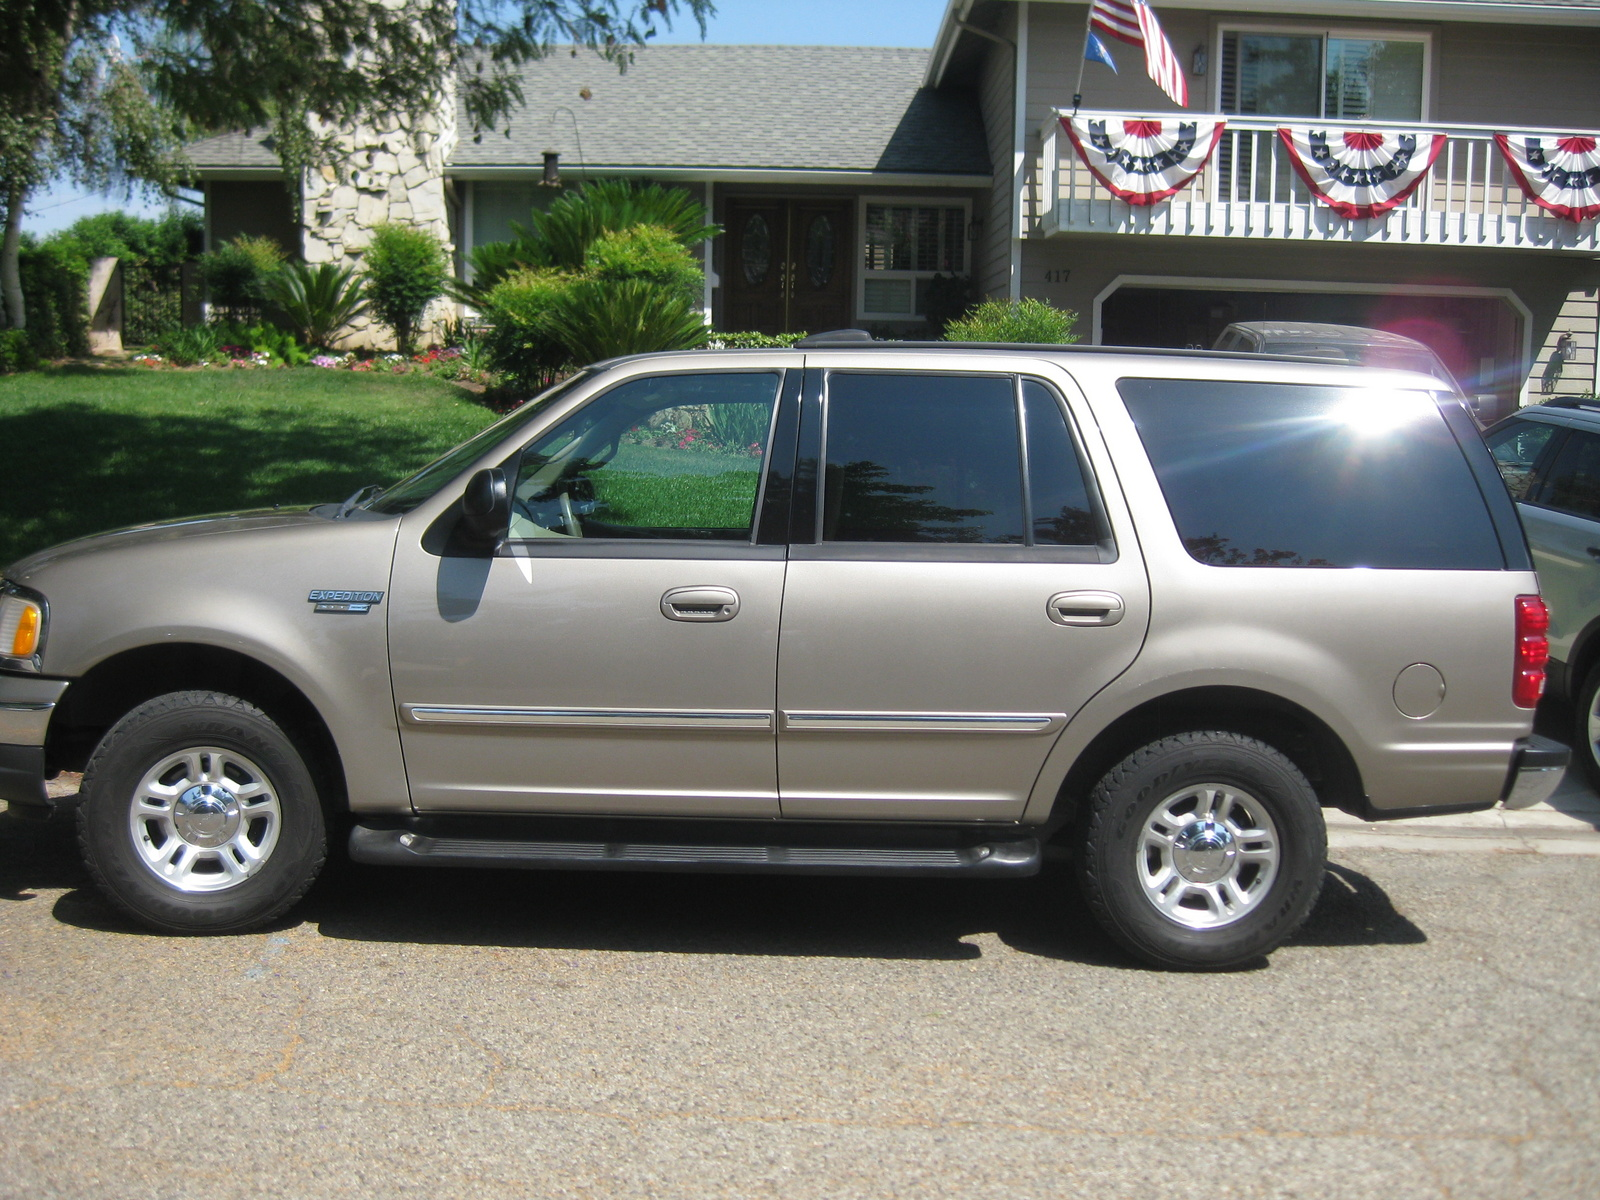 Ford Expedition 2001 Review Amazing Pictures And Images Look At 1989 Econoline Fuse Box Photo 6